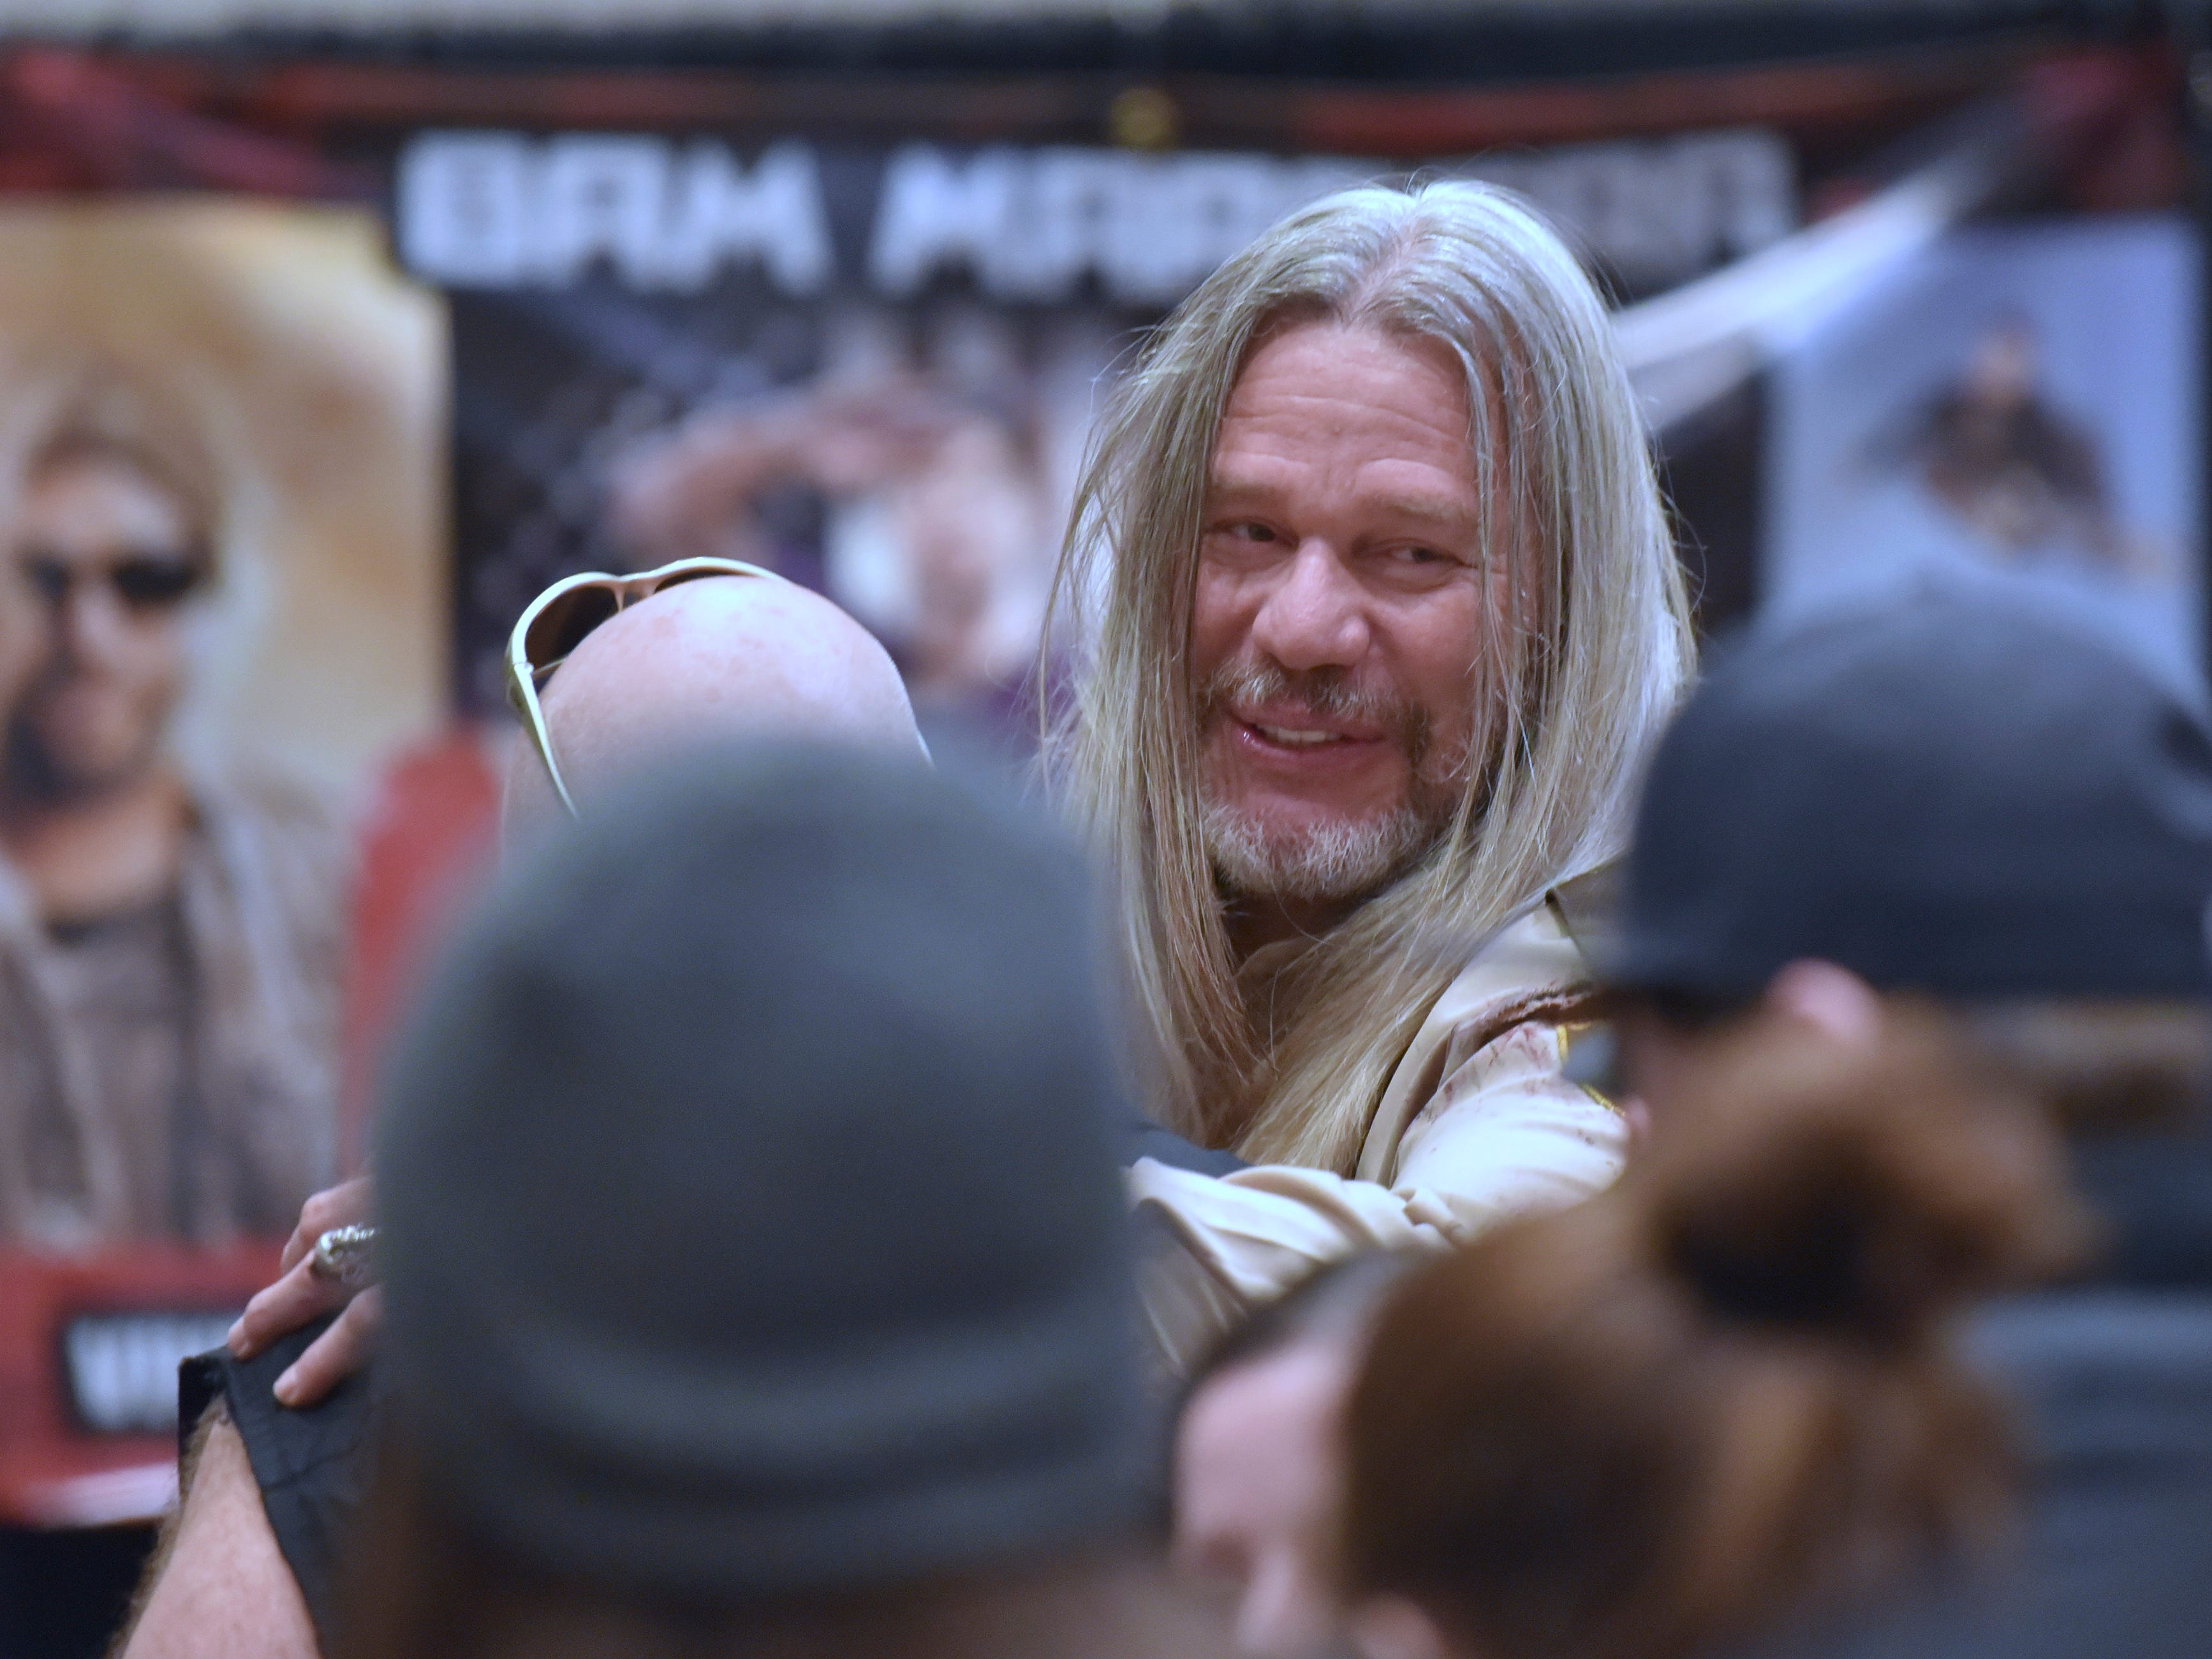 Six-foot, 10-inches tall actor Robert Mukes, who played 'Rufus R.J. Firefly, Jr,' in Rob Zombie's slasher / horror movie House of 1000 Corpses, talks to a fan.